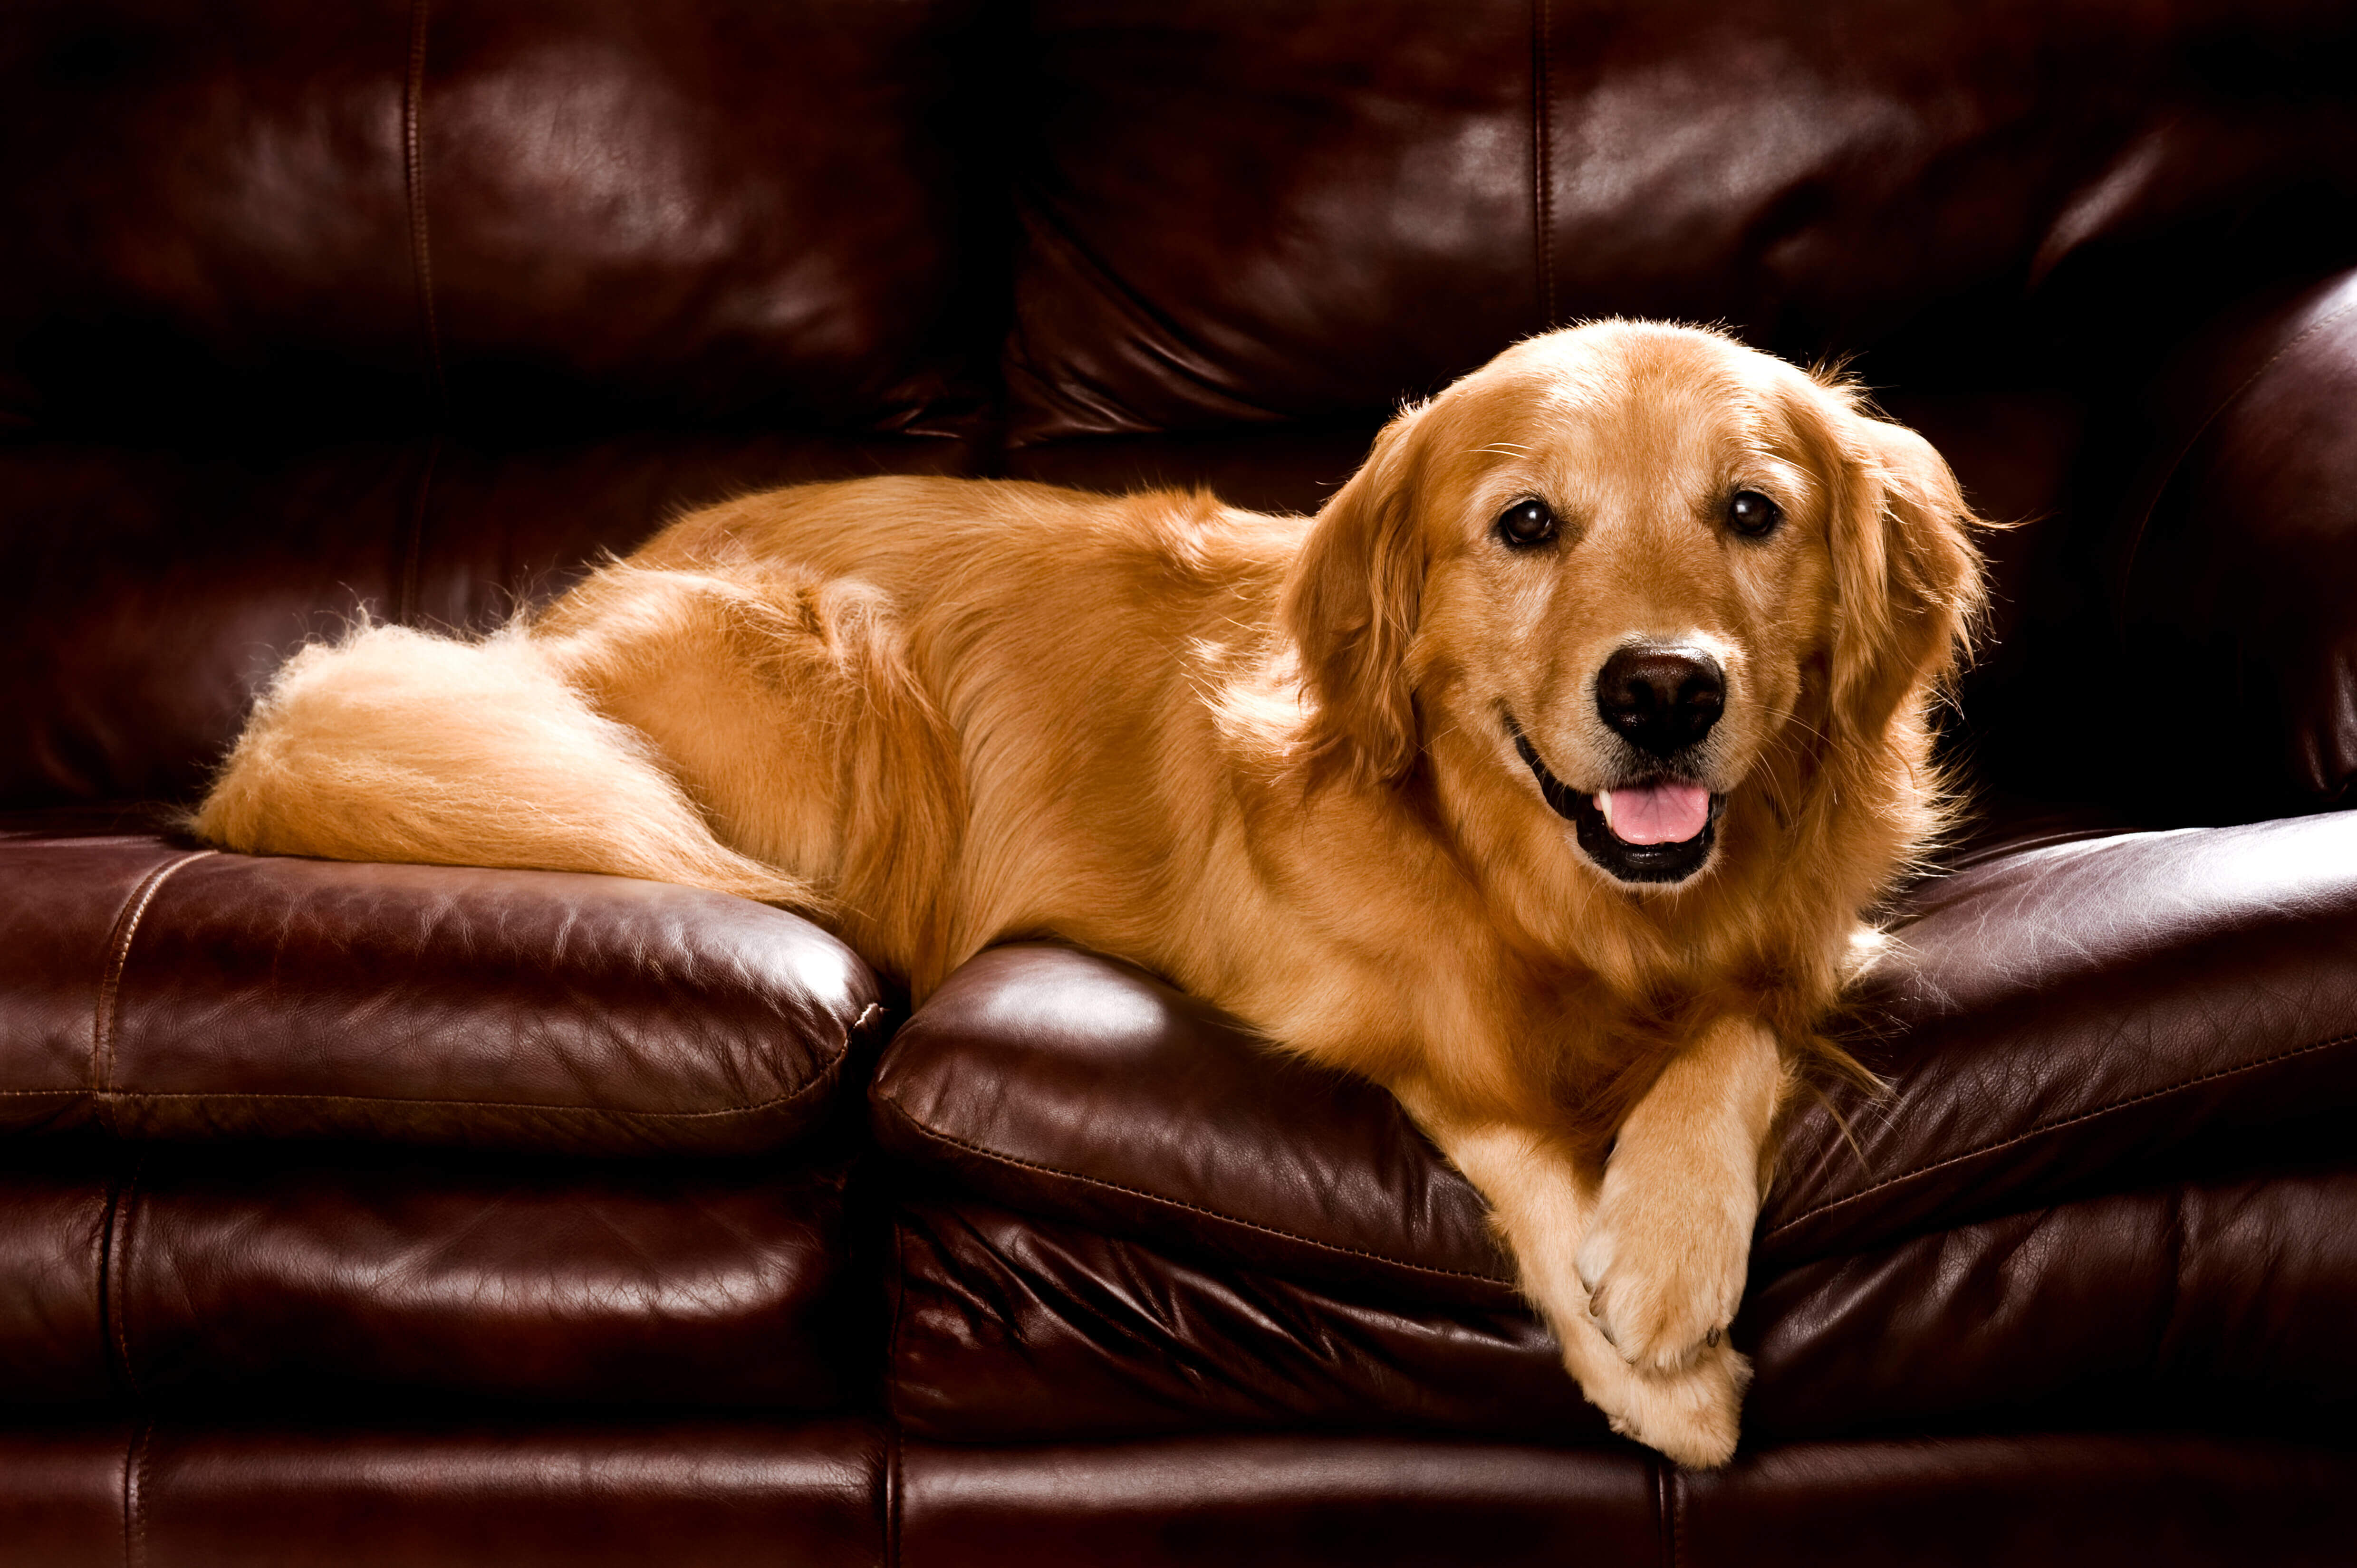 golden retriever. Cute Golden Retriever. Golden Retriever on sofa. Dog on sofa. Fireworks and dogs.